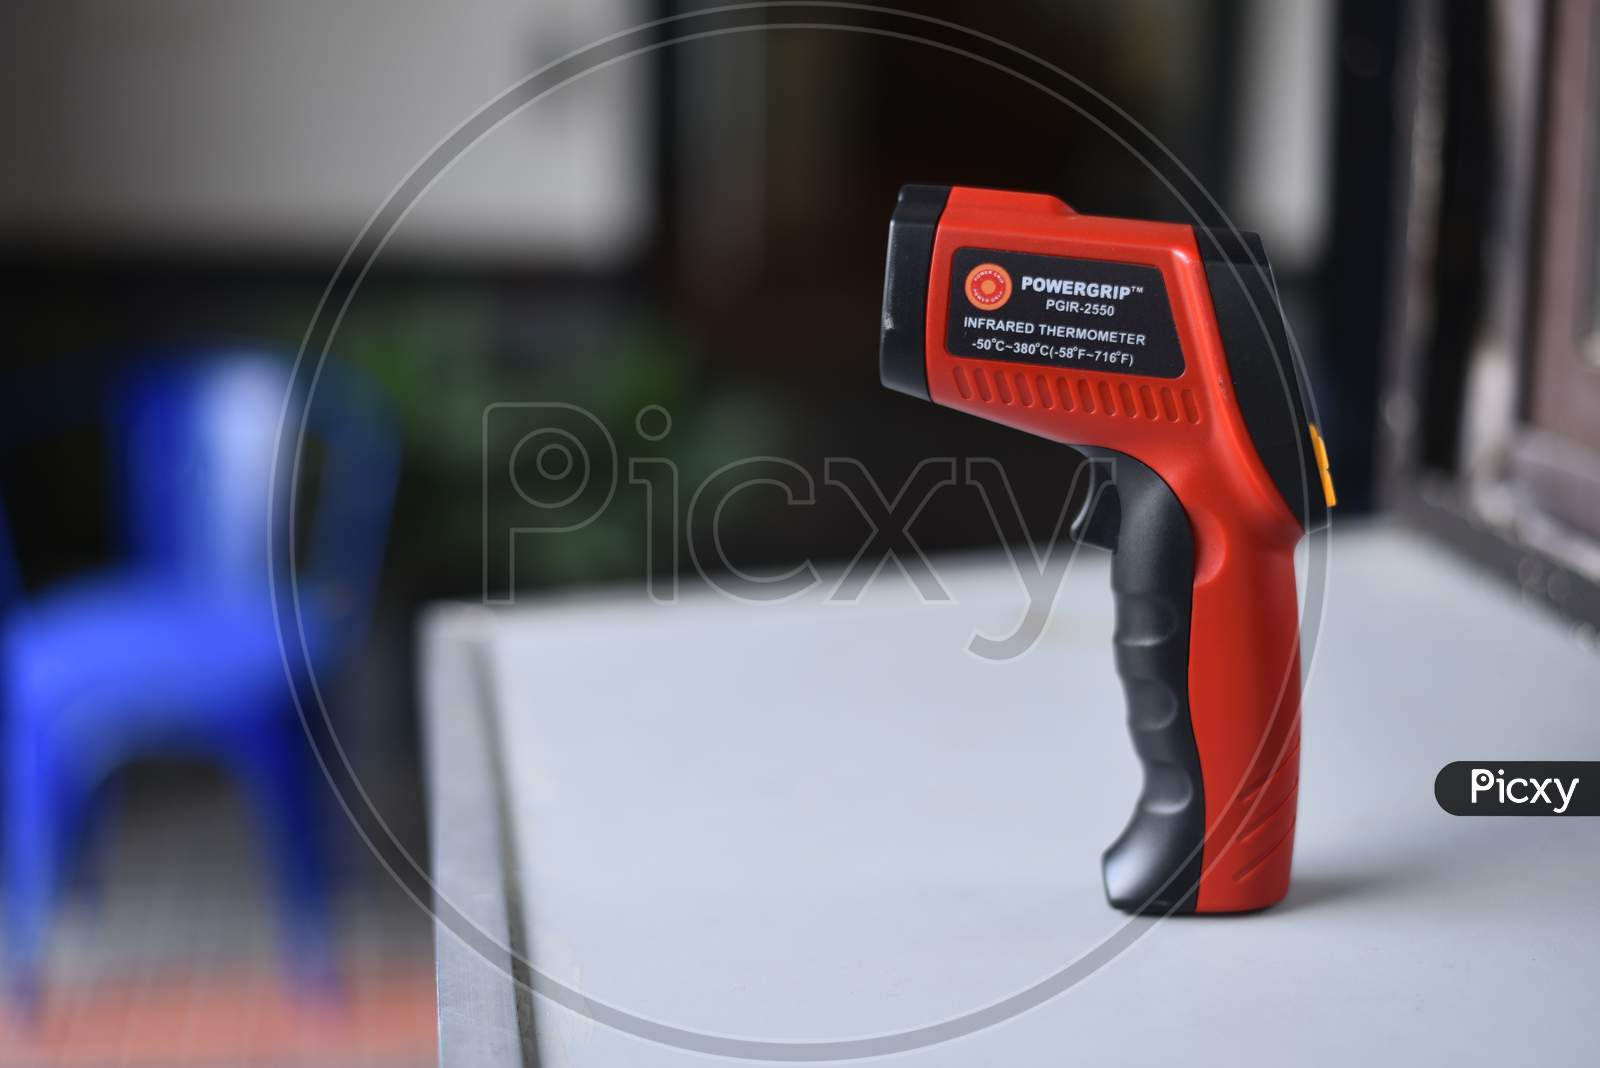 An Infrared Thermometer Used To Find Out The Human Body Temperature As Fever Is One Of The Symptoms Of Covid19 Corona Virus